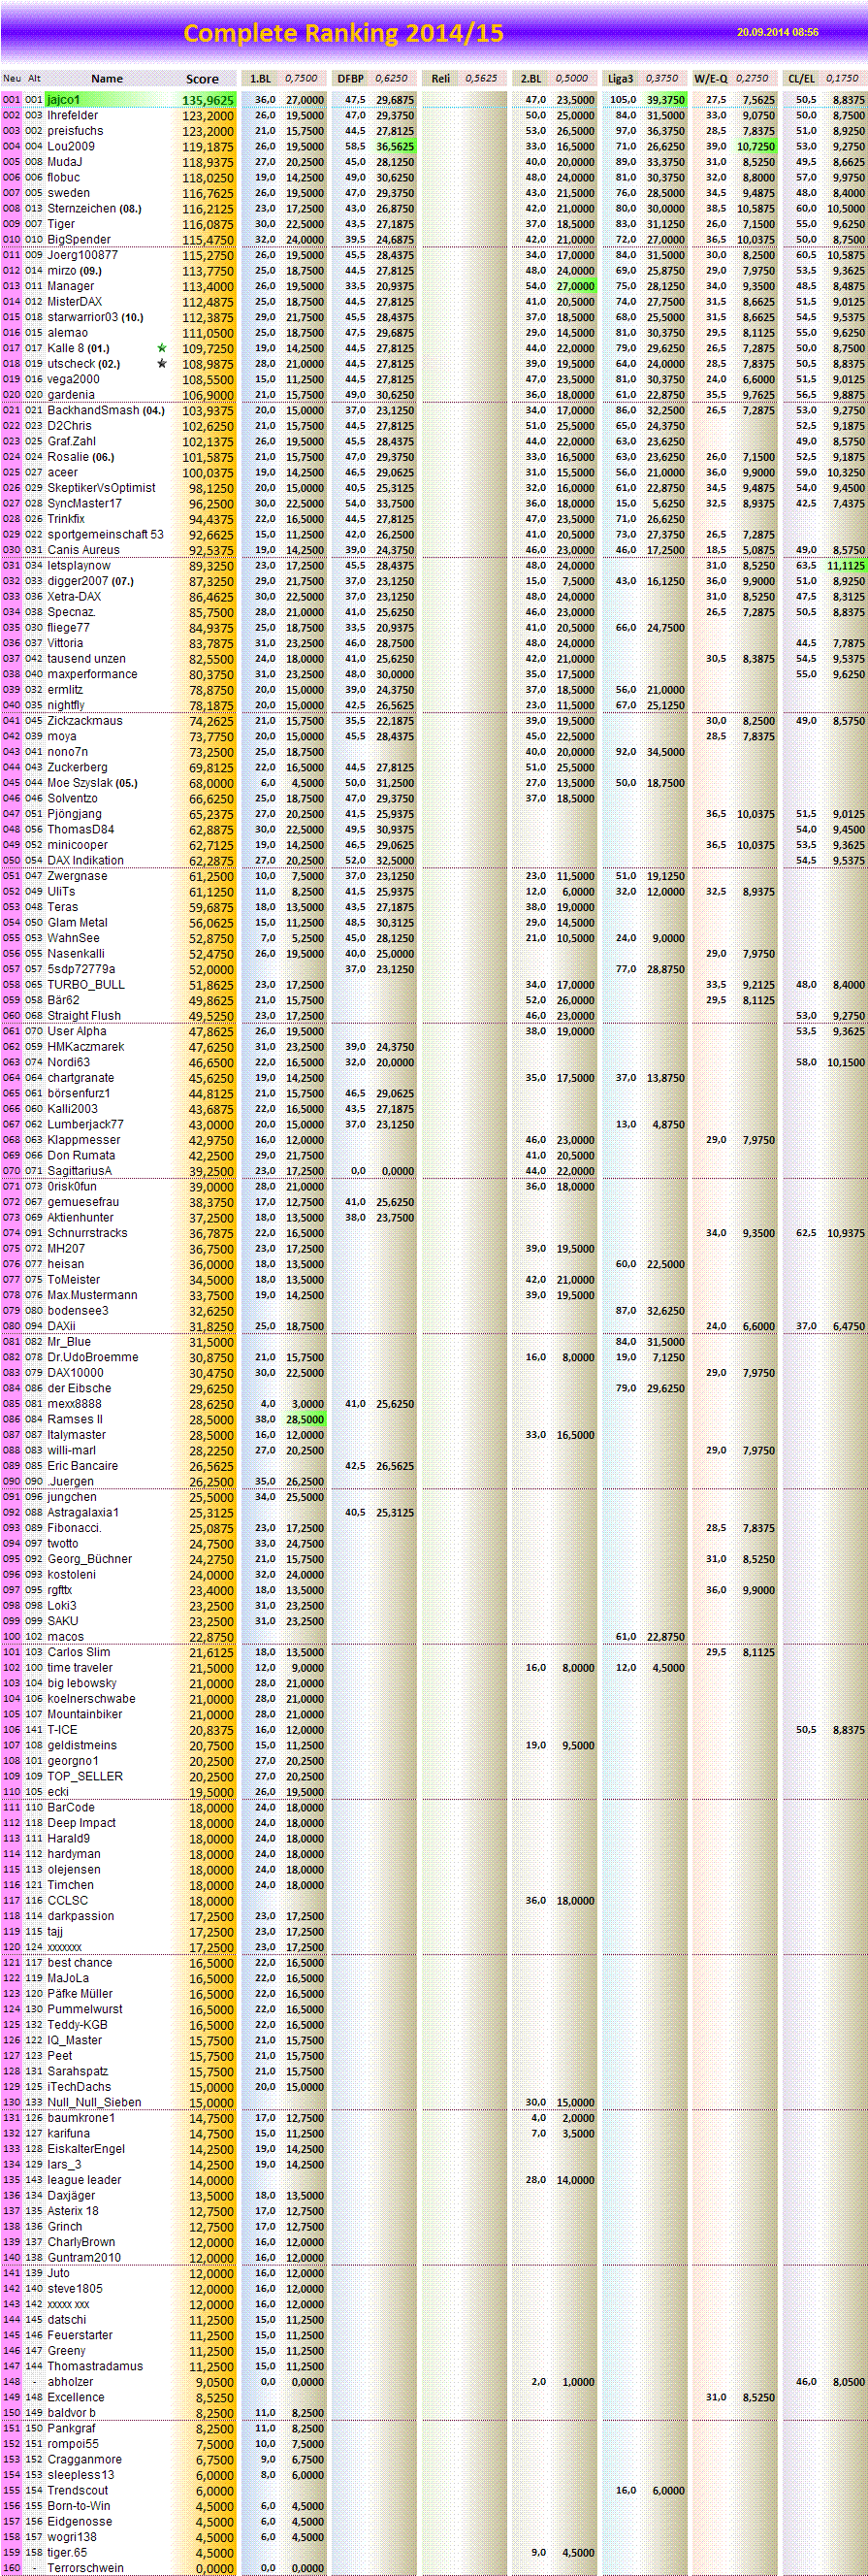 completeranking2014-15.png